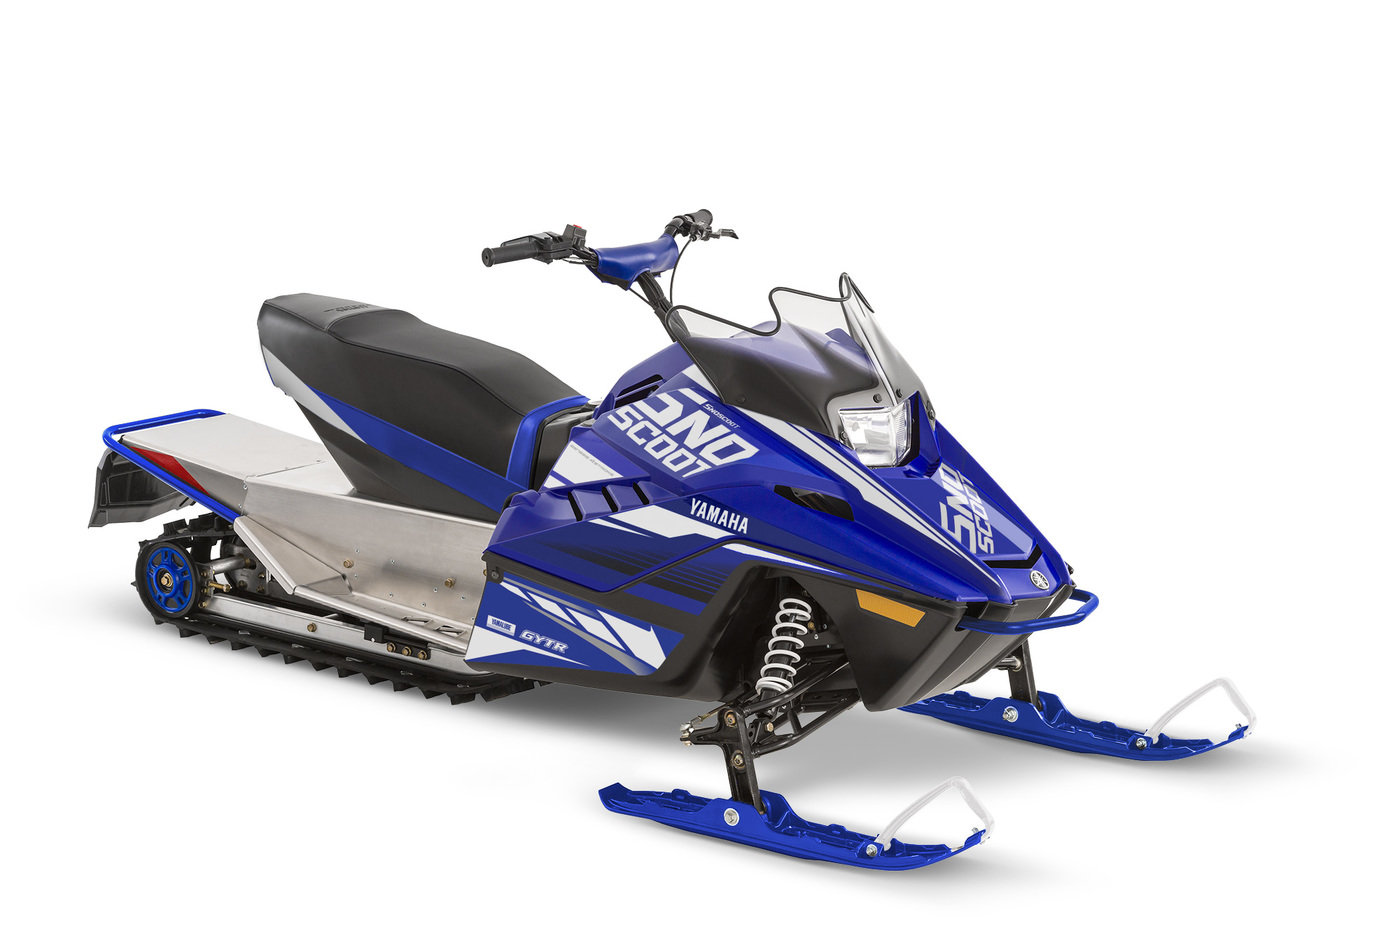 Yamaha Snowmobile Color & Graphics by Darin Butterfield at